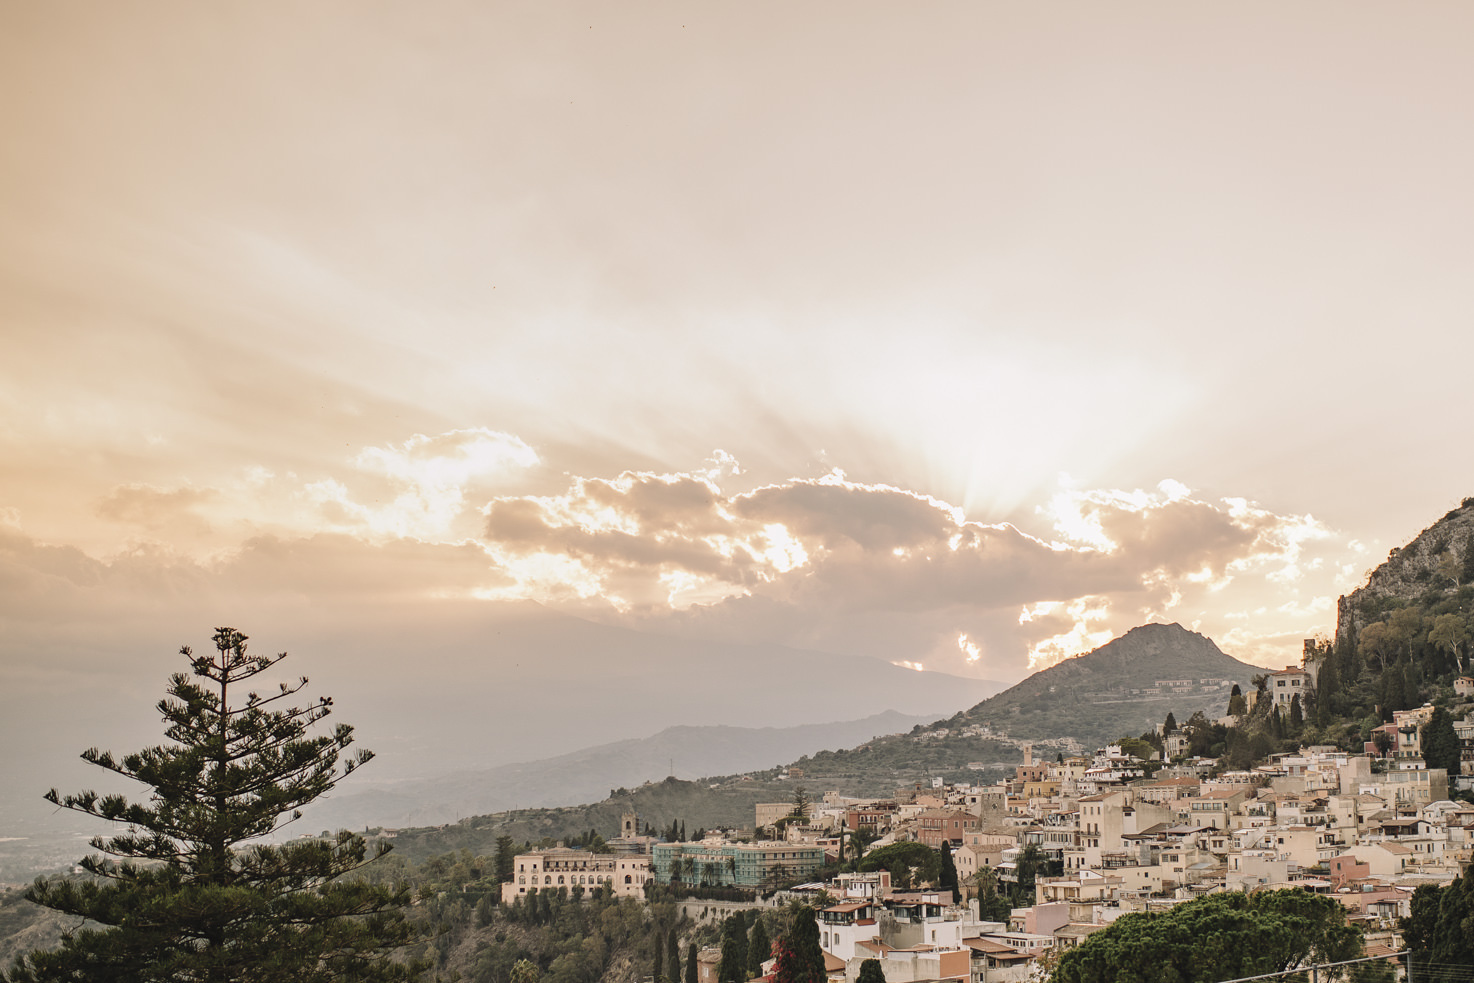 Panorama of Mount Etna in Sicily